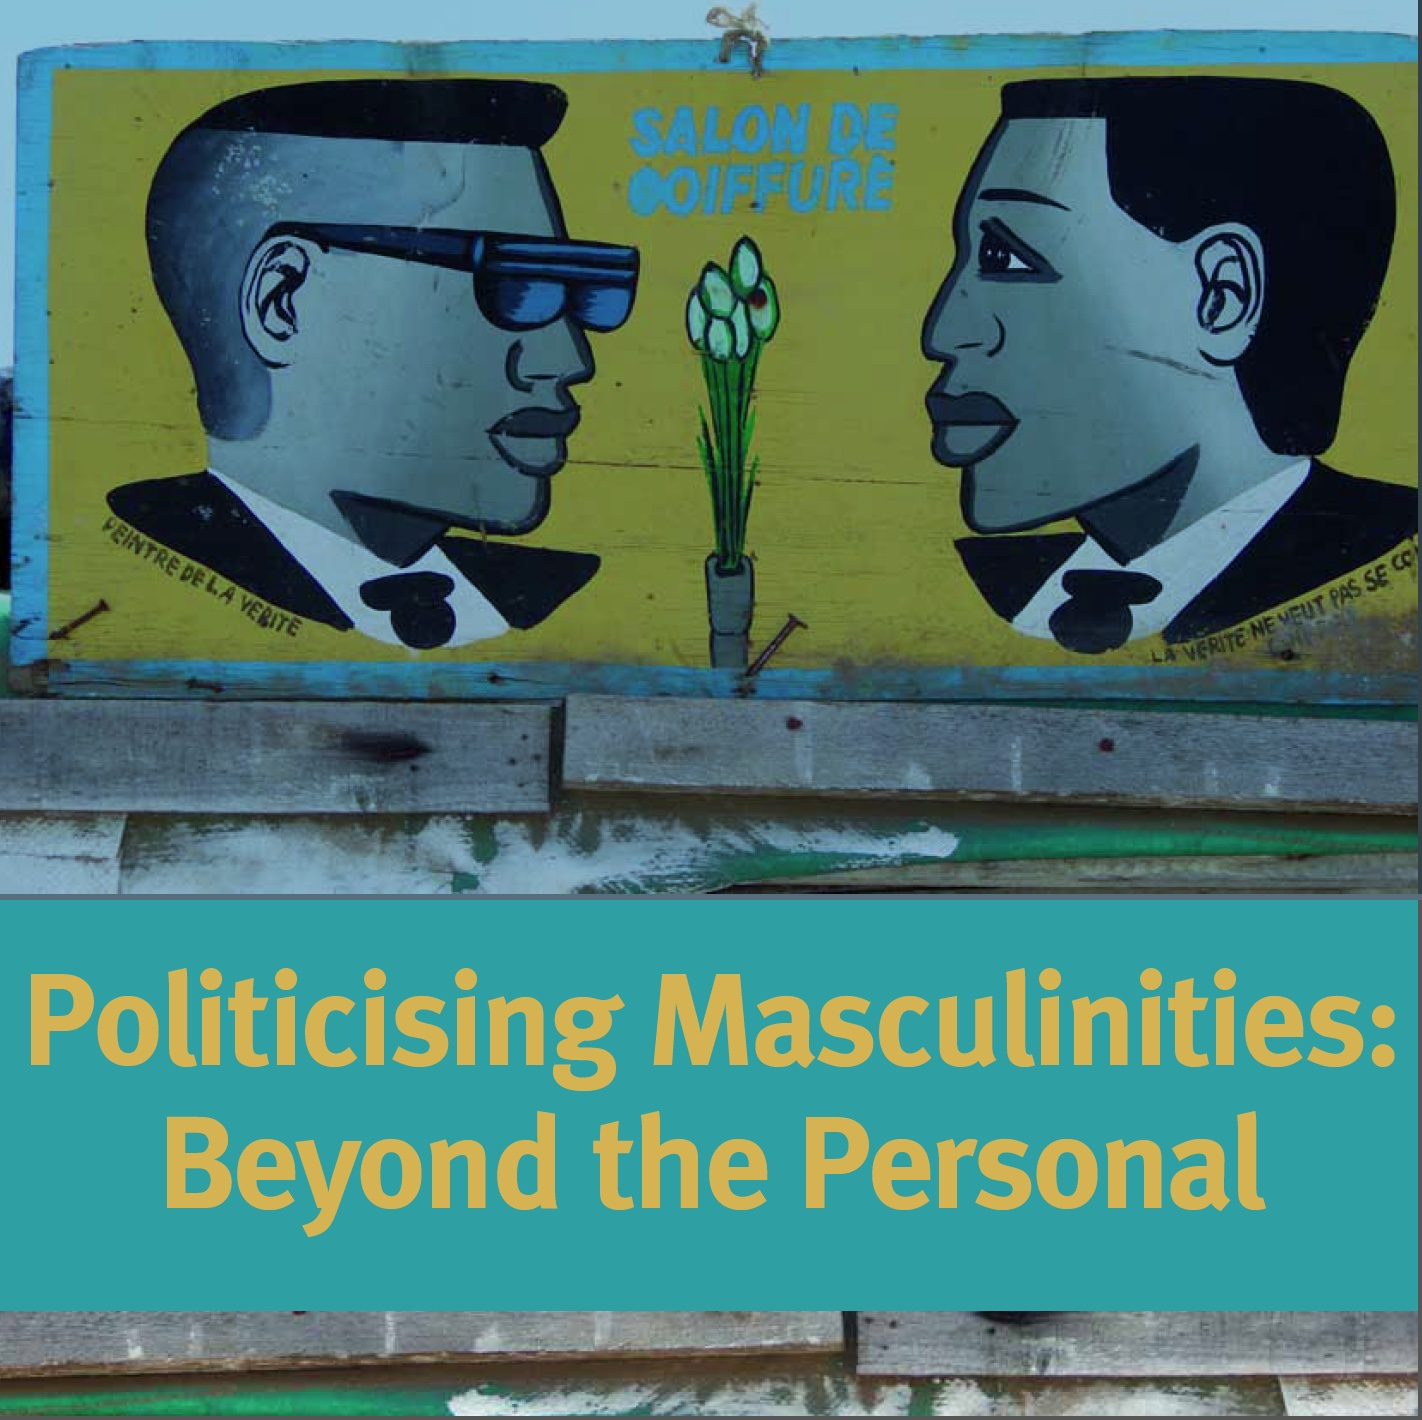 IDS, Politicising Masculinities - Dakar report - Cover